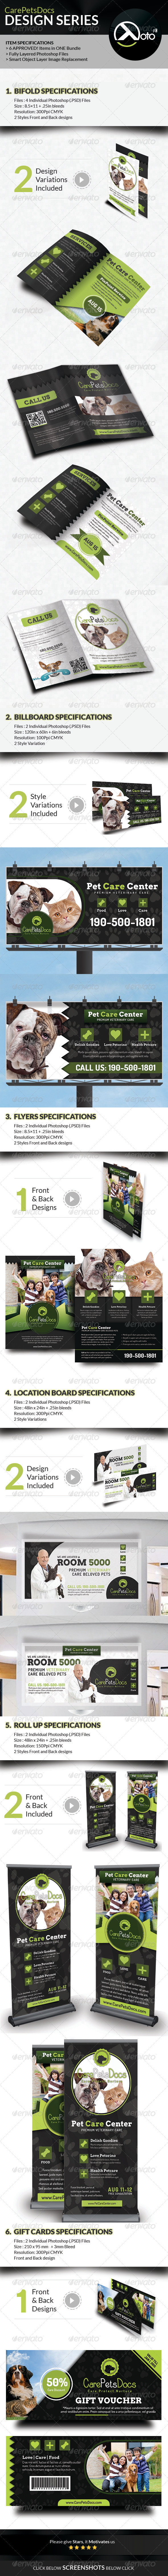 GraphicRiver Care Pets Docs Veterinary Design Series Bundle 8562834